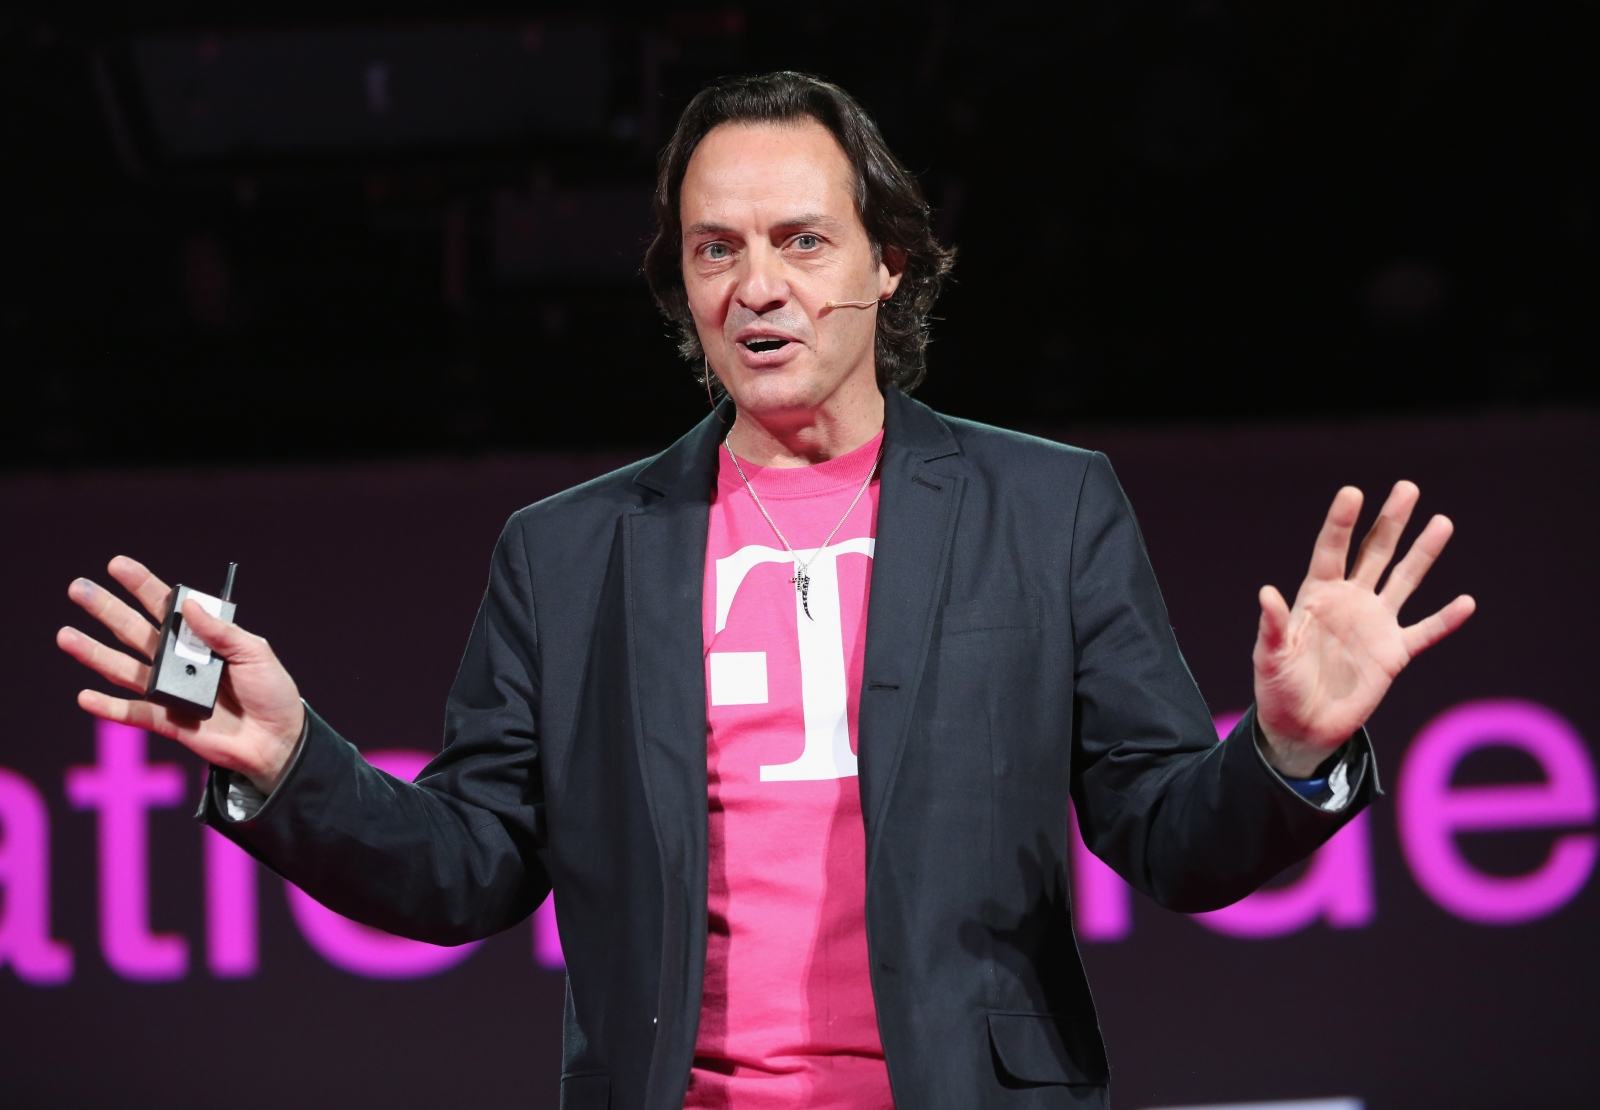 John Legere, CEO of T-Mobile US